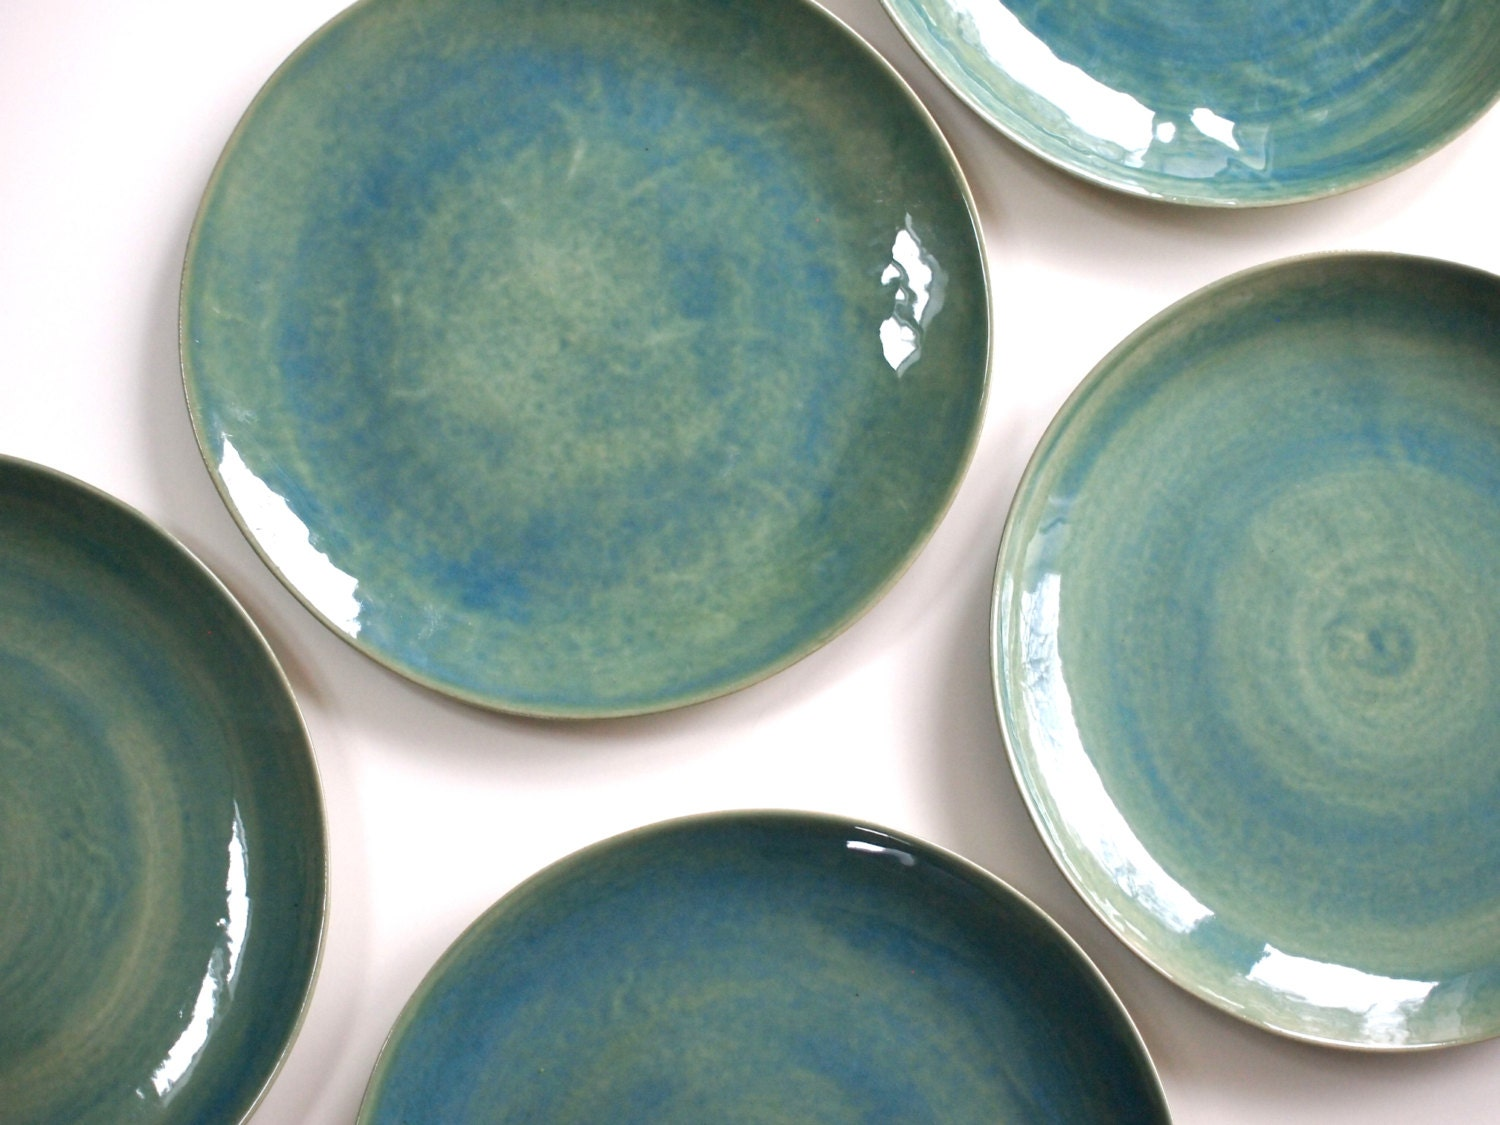 Stoneware Plates Dinner Set Glazed In Green Ceramic Plate